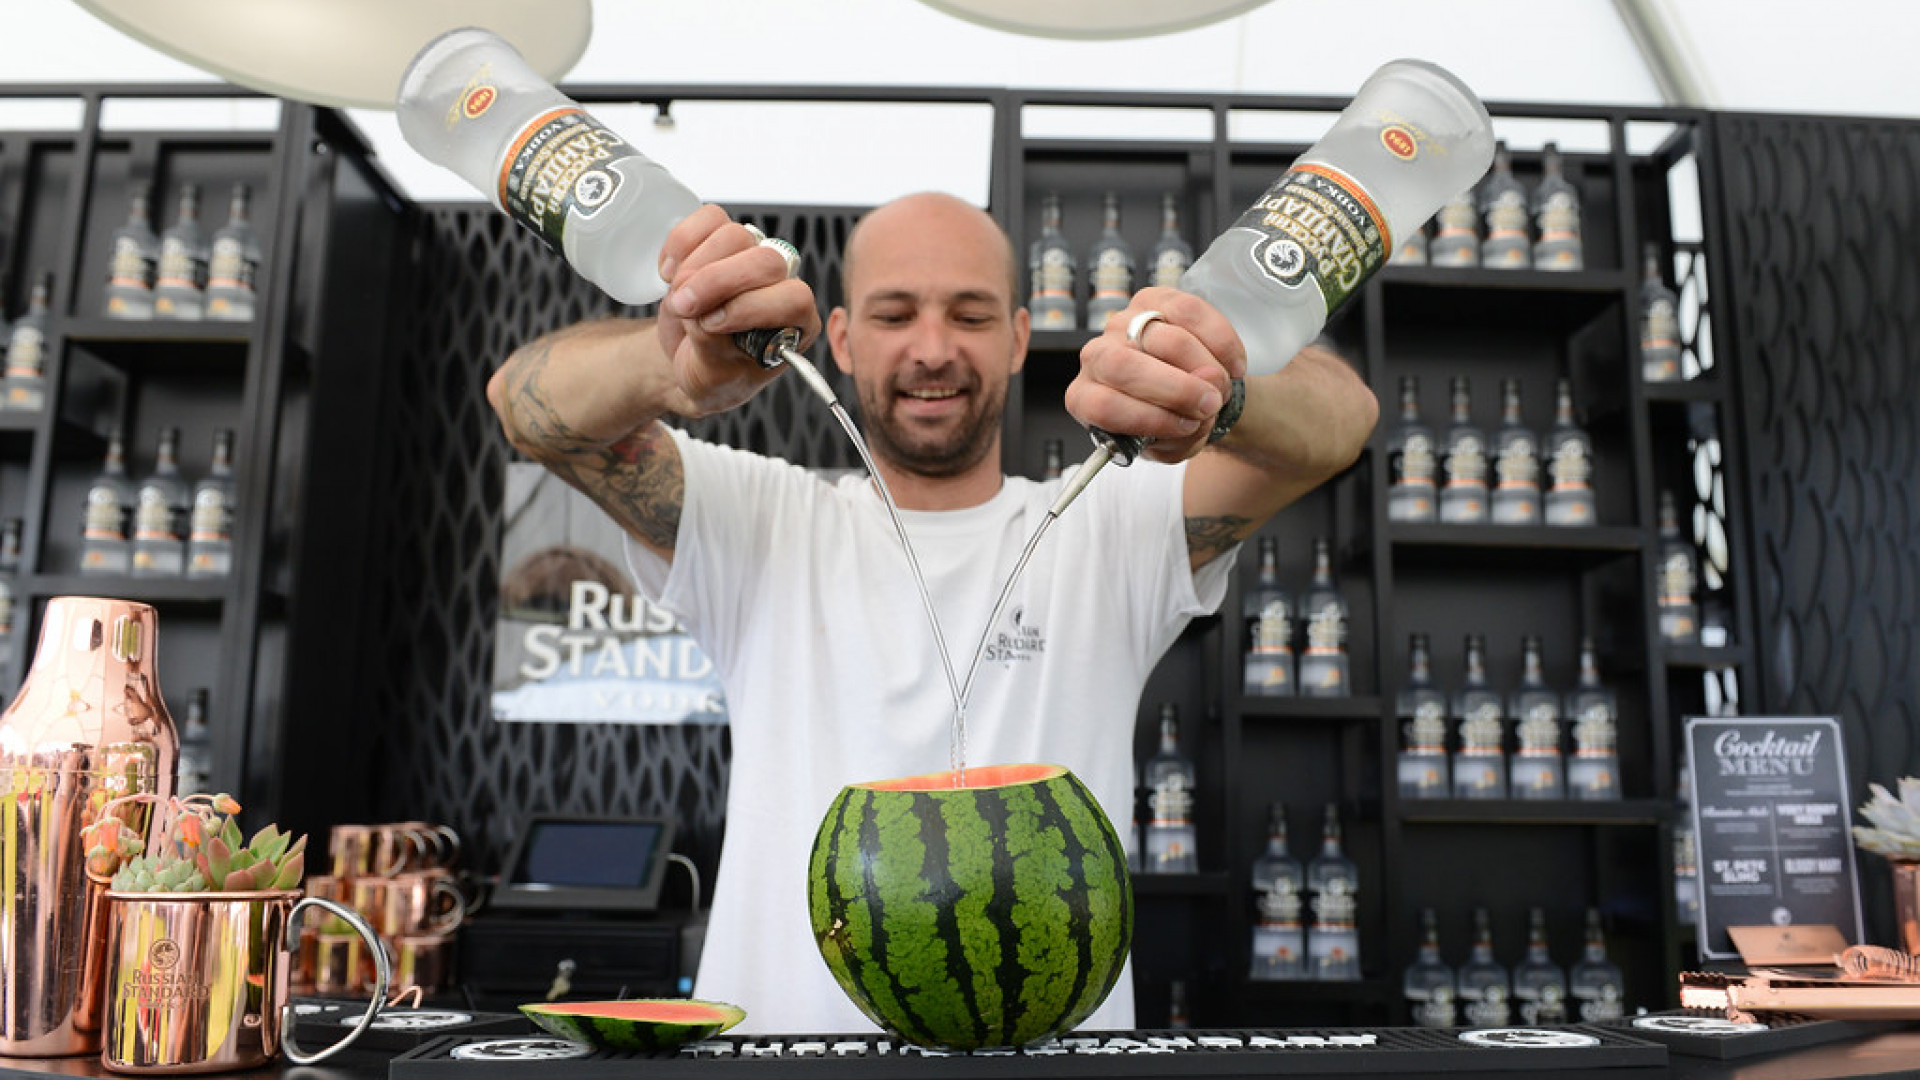 Russian Standard vodka at Latitude